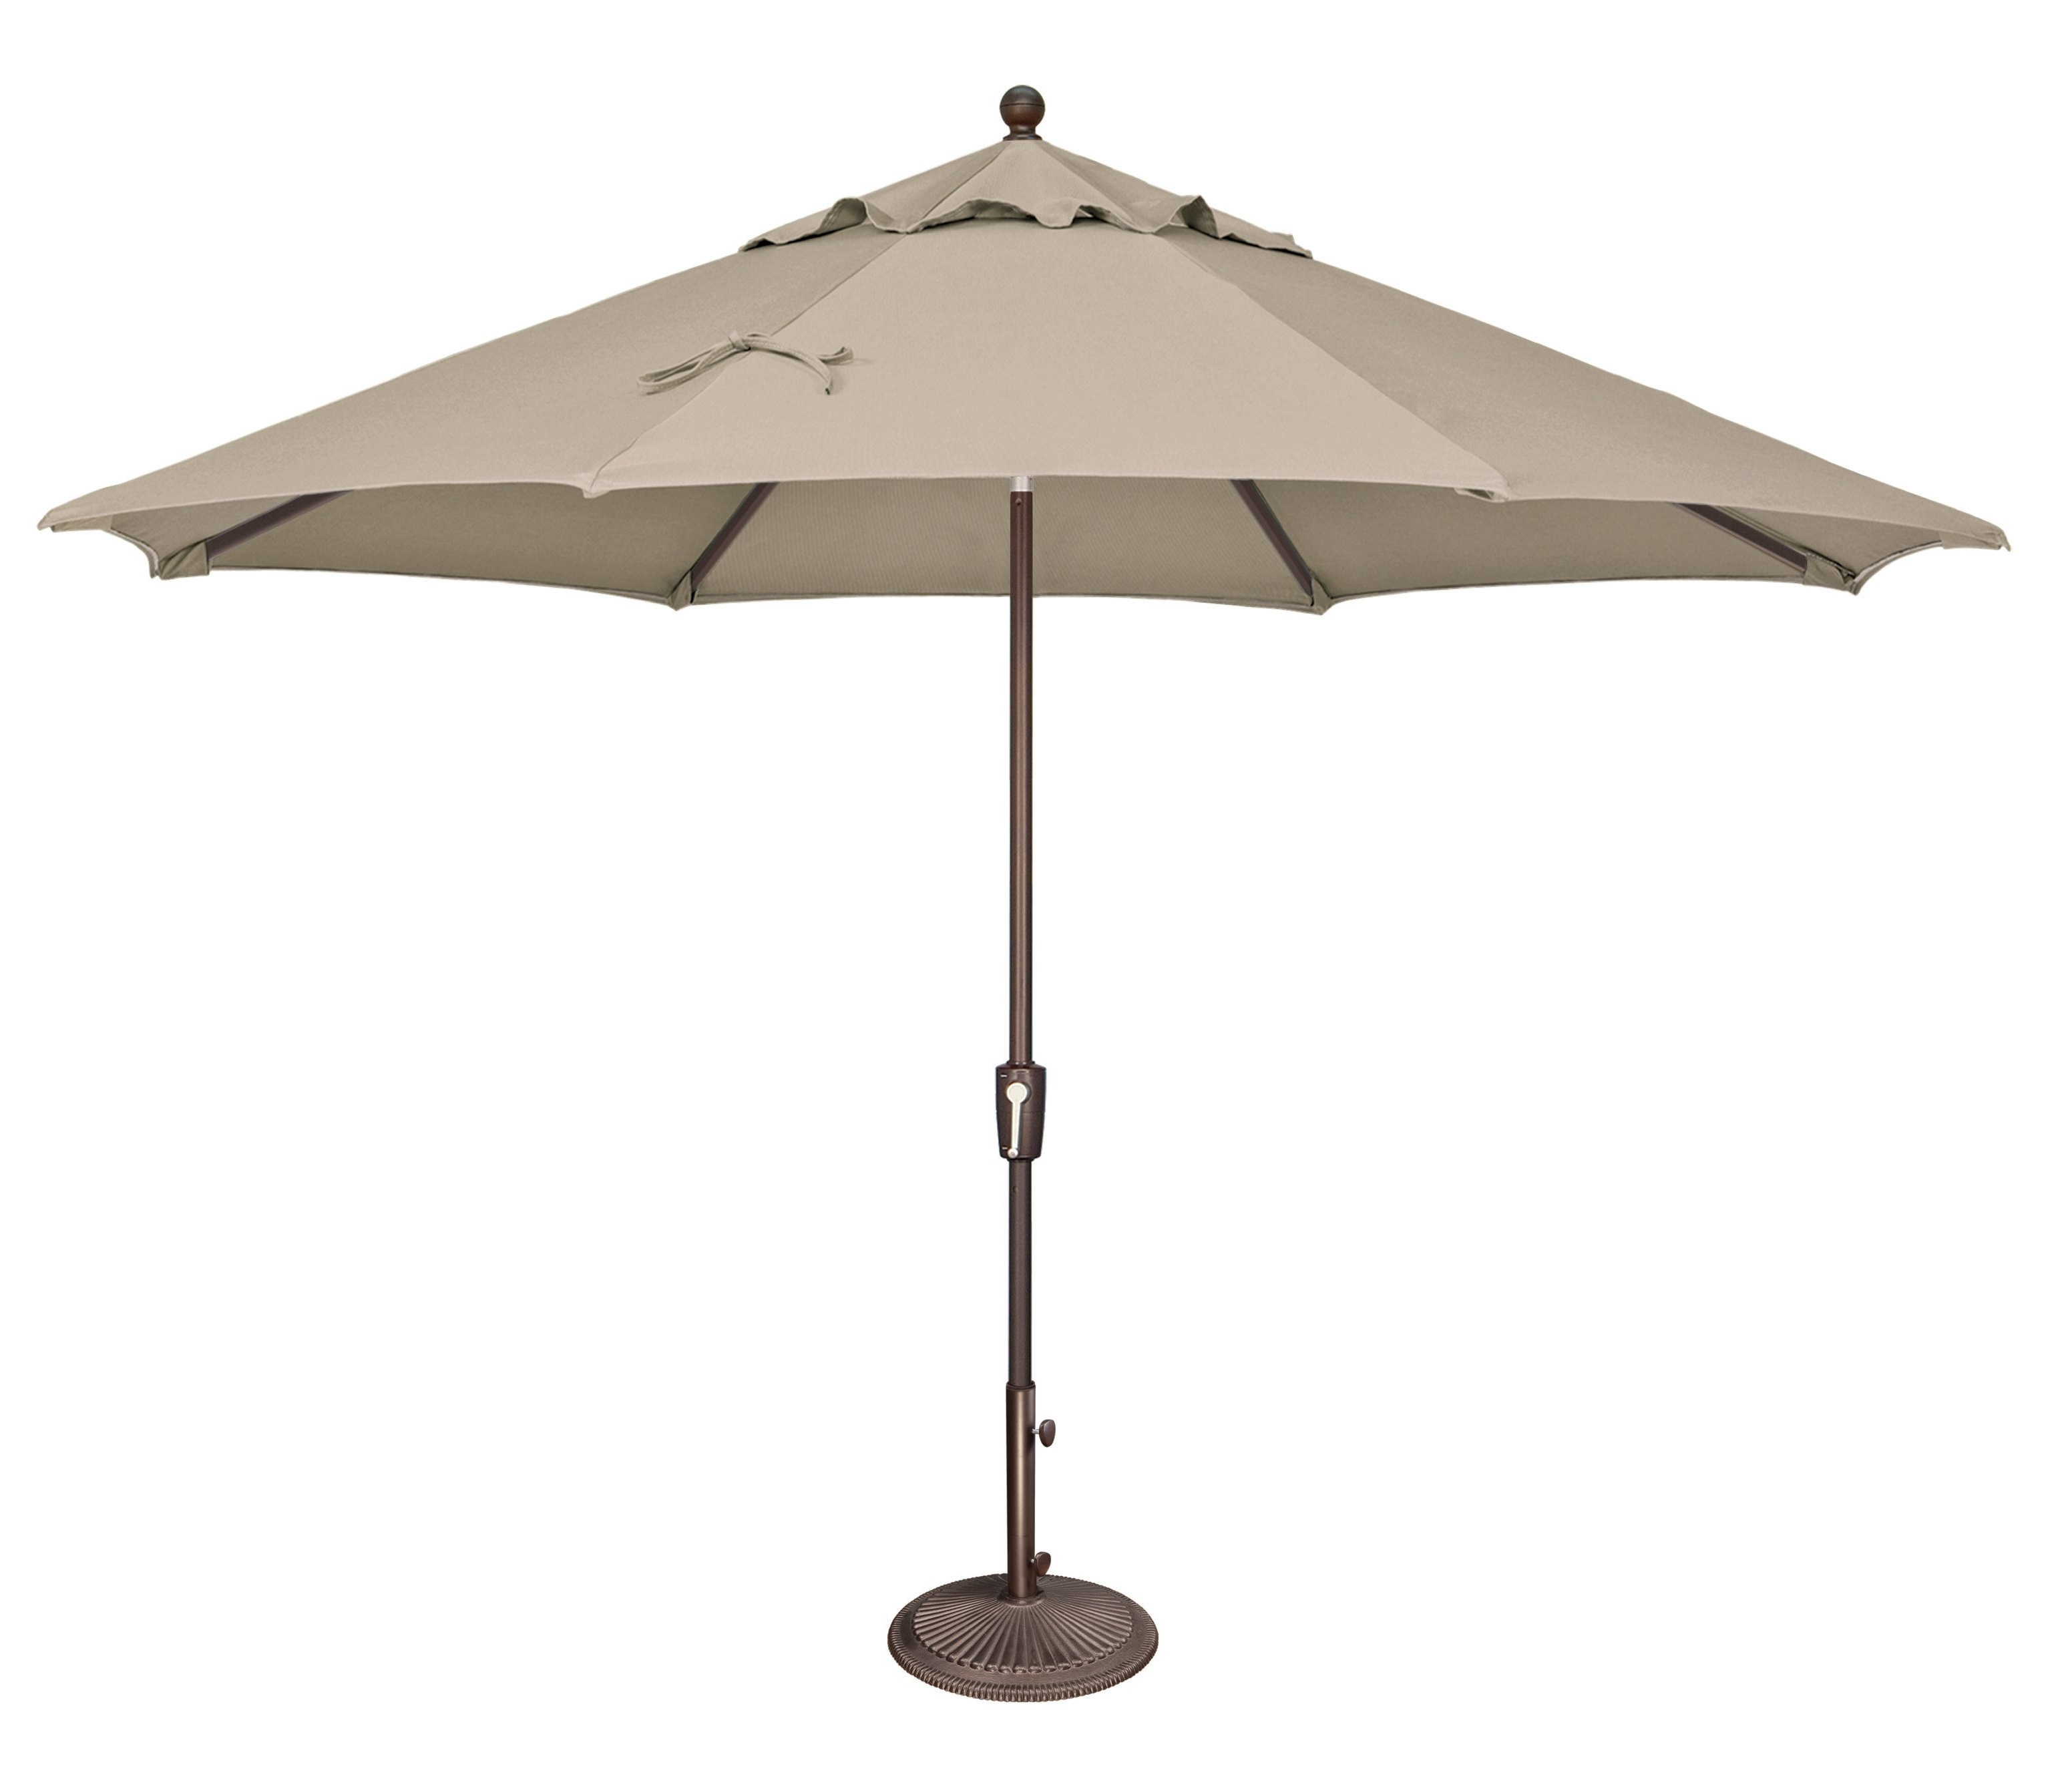 Widely Used Launceston 11' Market Umbrella Intended For Crowland Market Sunbrella Umbrellas (View 20 of 20)